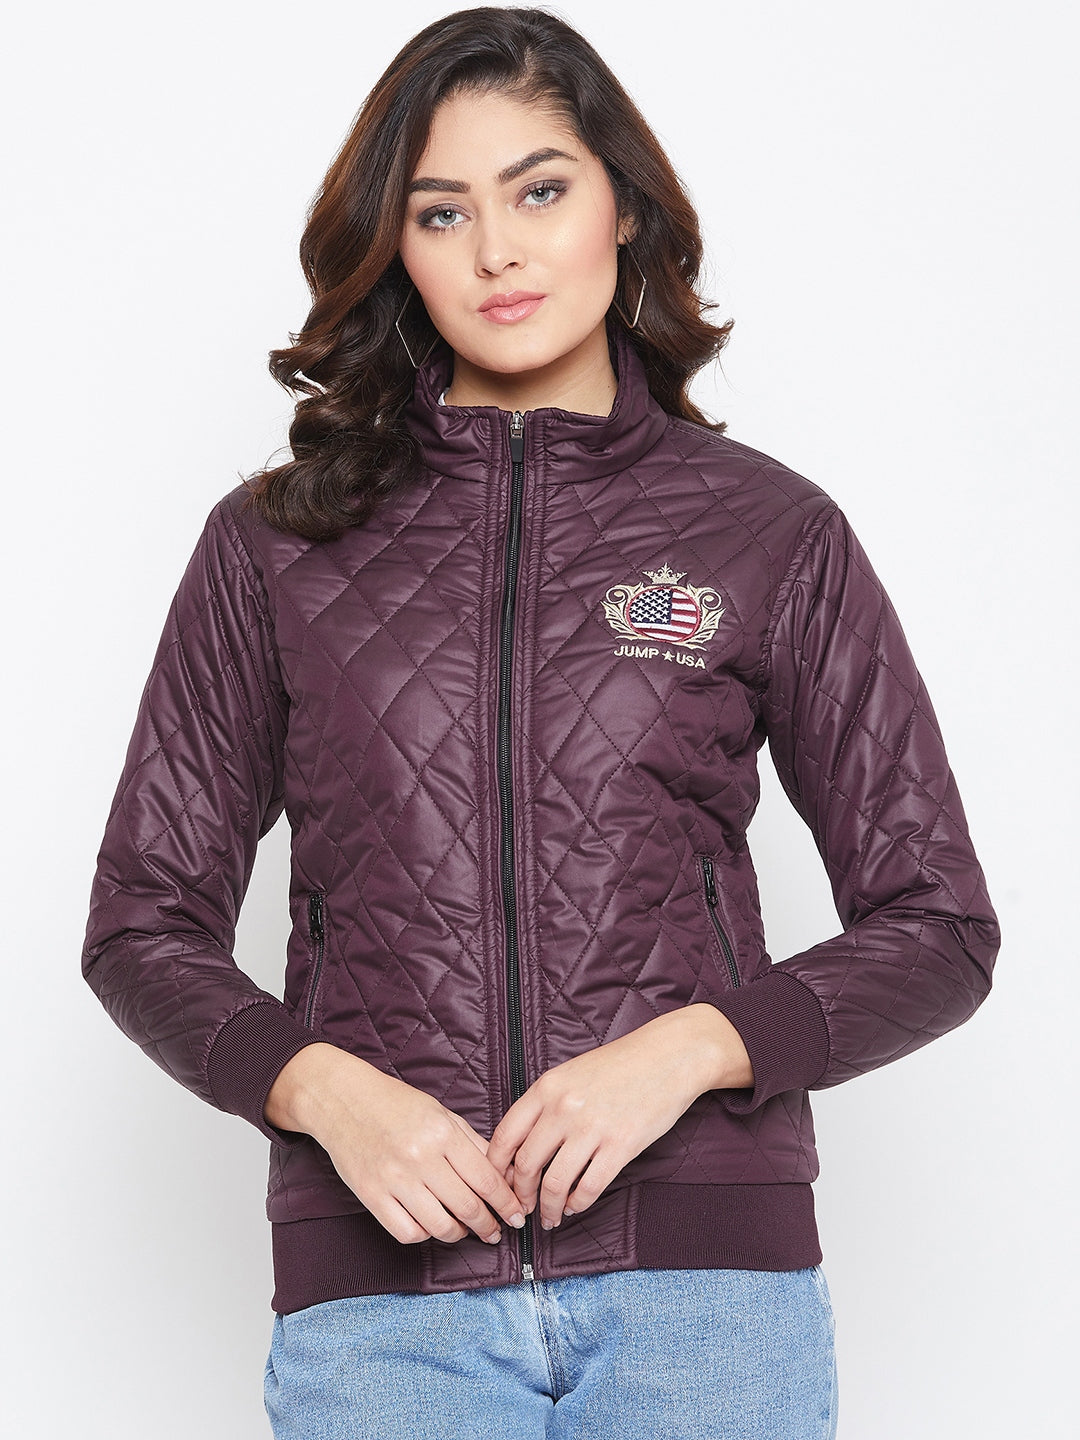 JUMP USA Women Wine Self Design Jacket